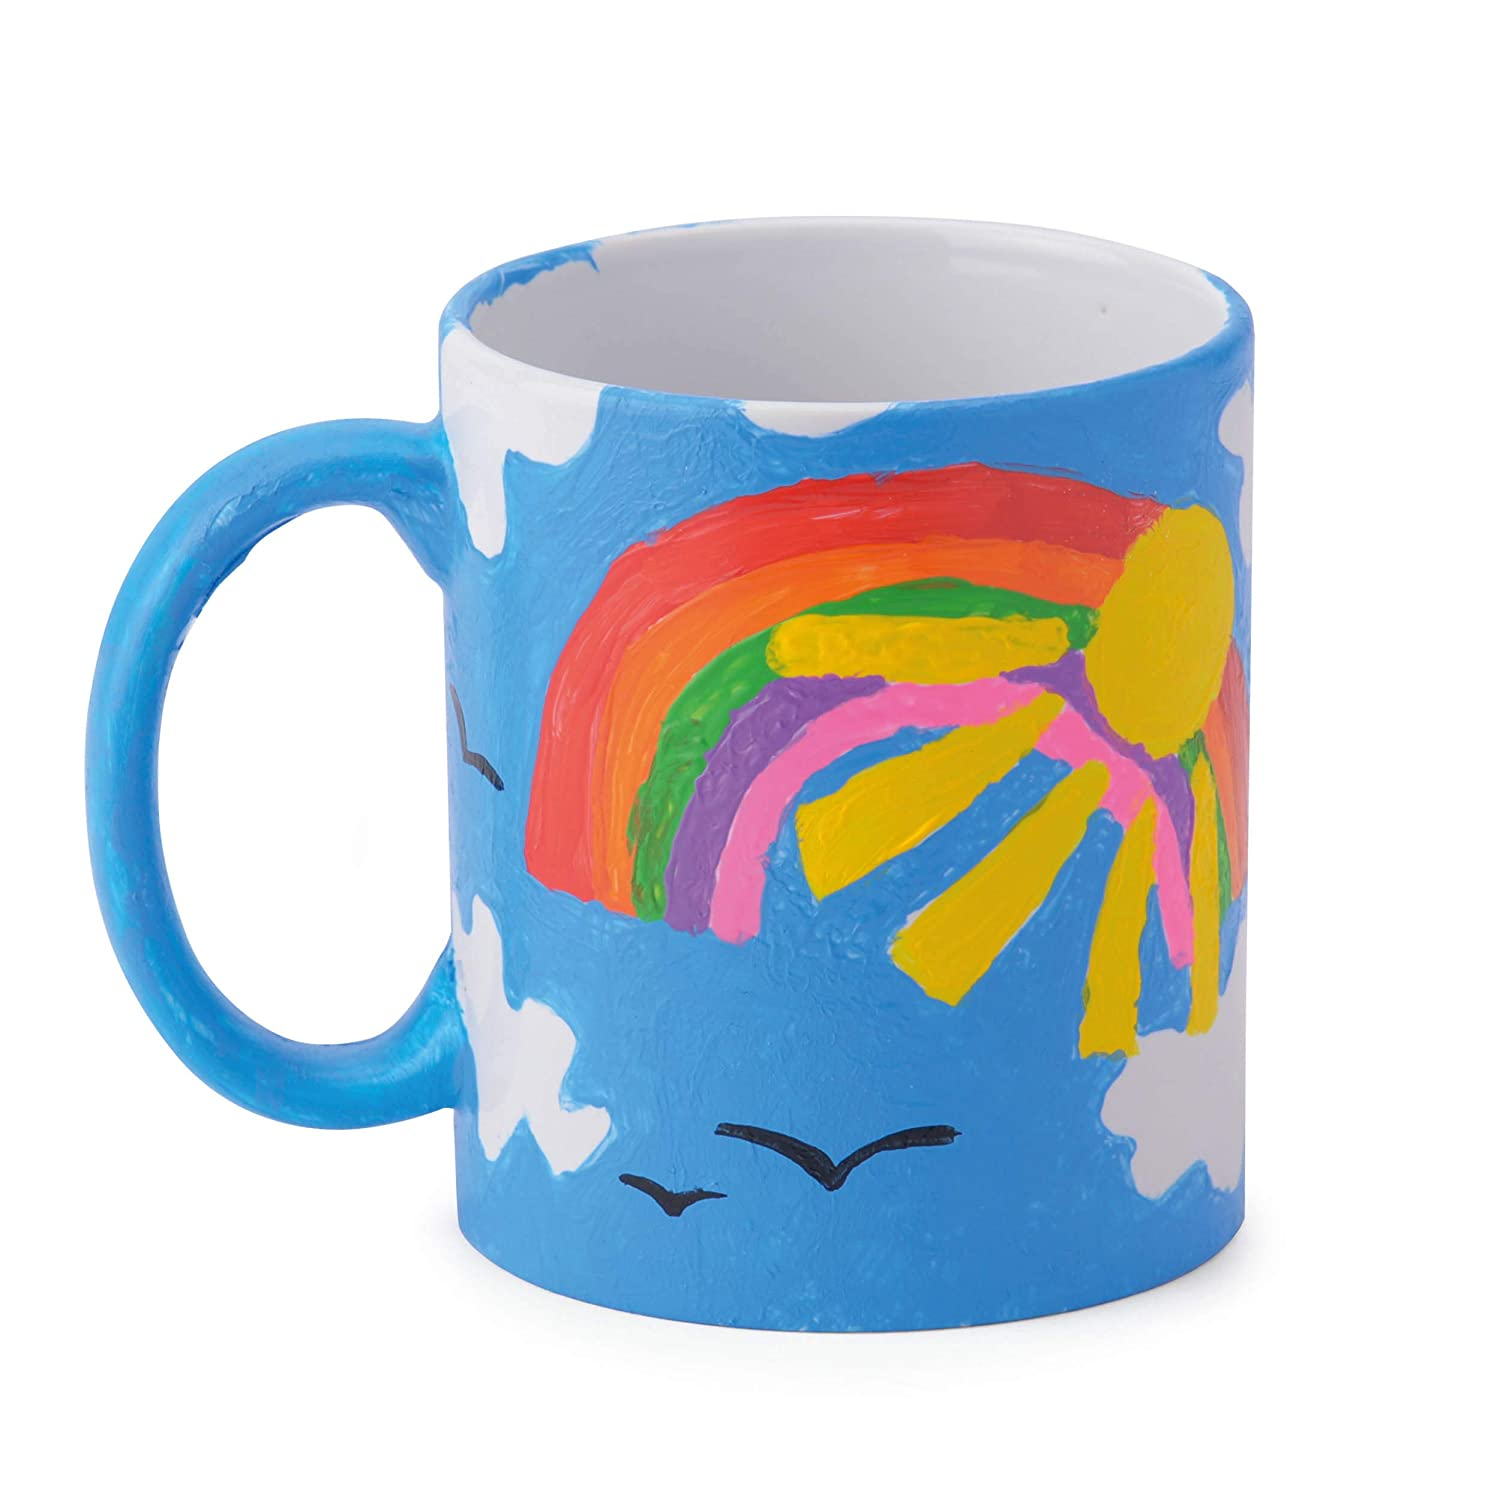 TY6037 Mug Craft Painting Set for Kids Made It